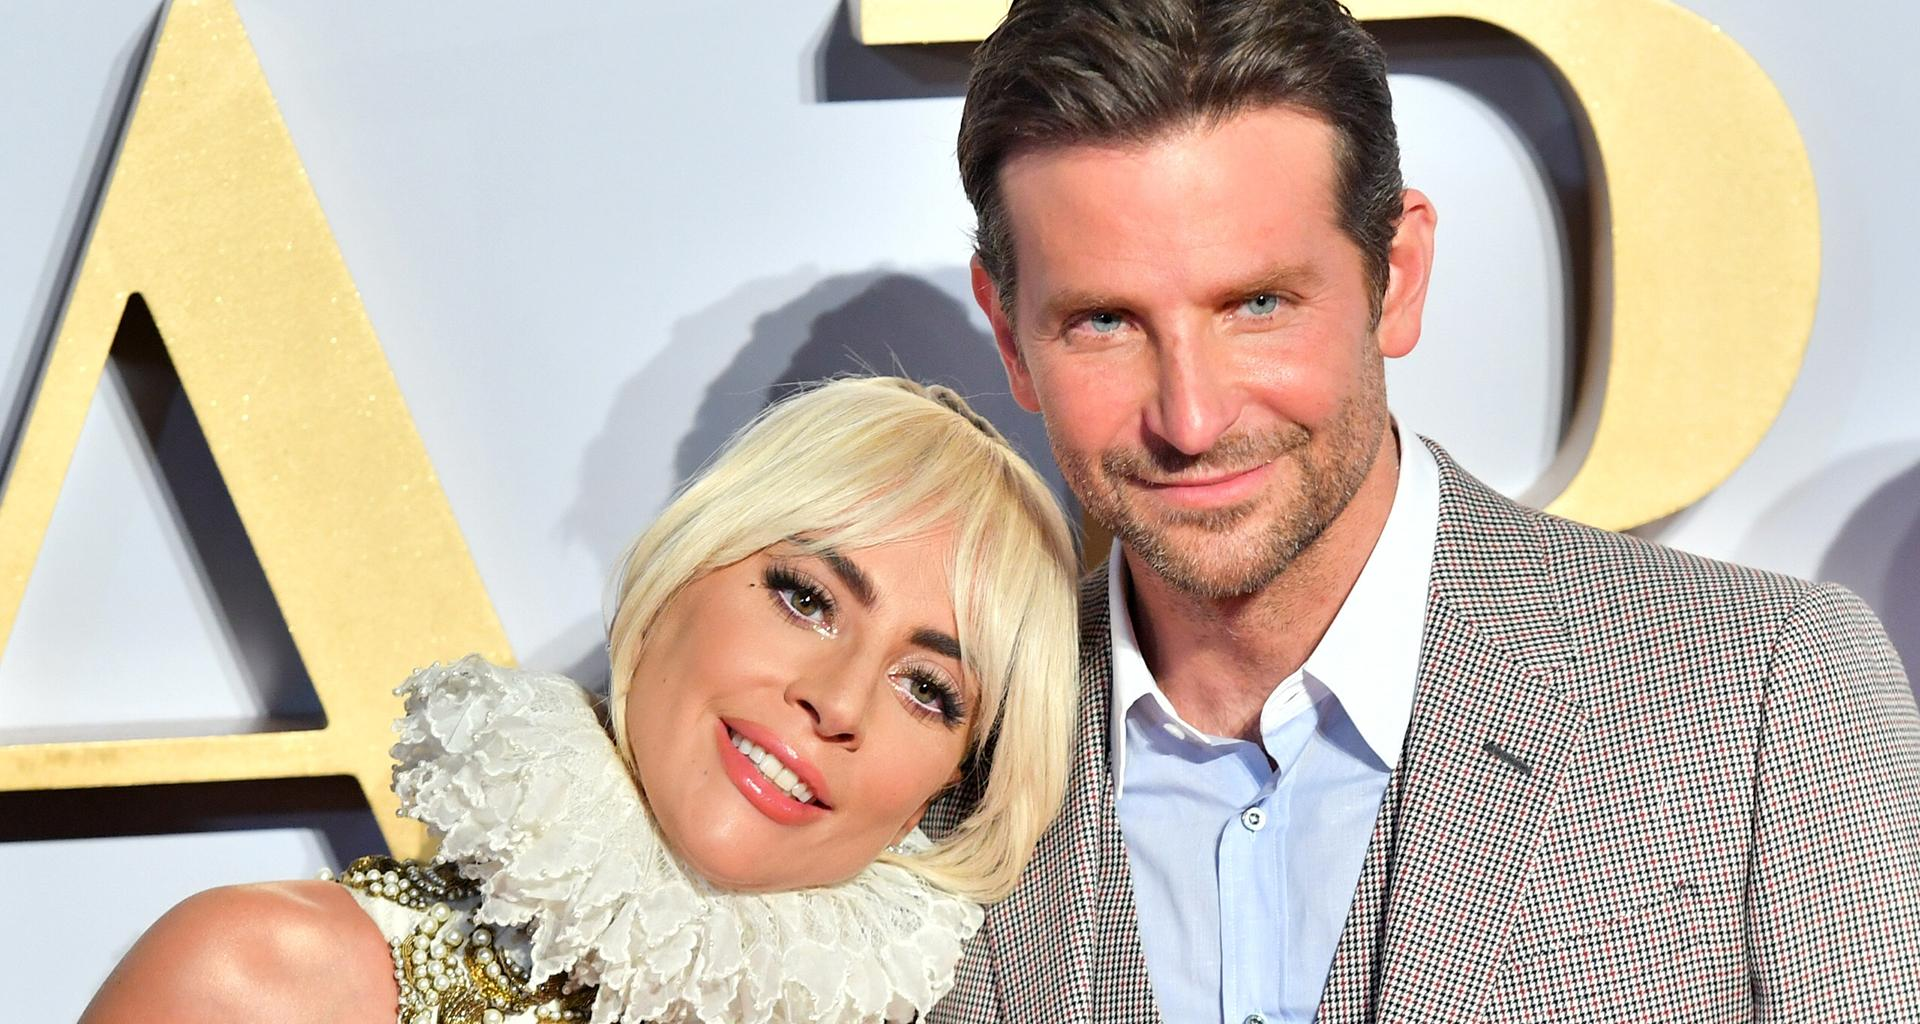 Lady Gaga And Bradley Cooper 'Find It Sweet' That People Want To See Them Get Married!